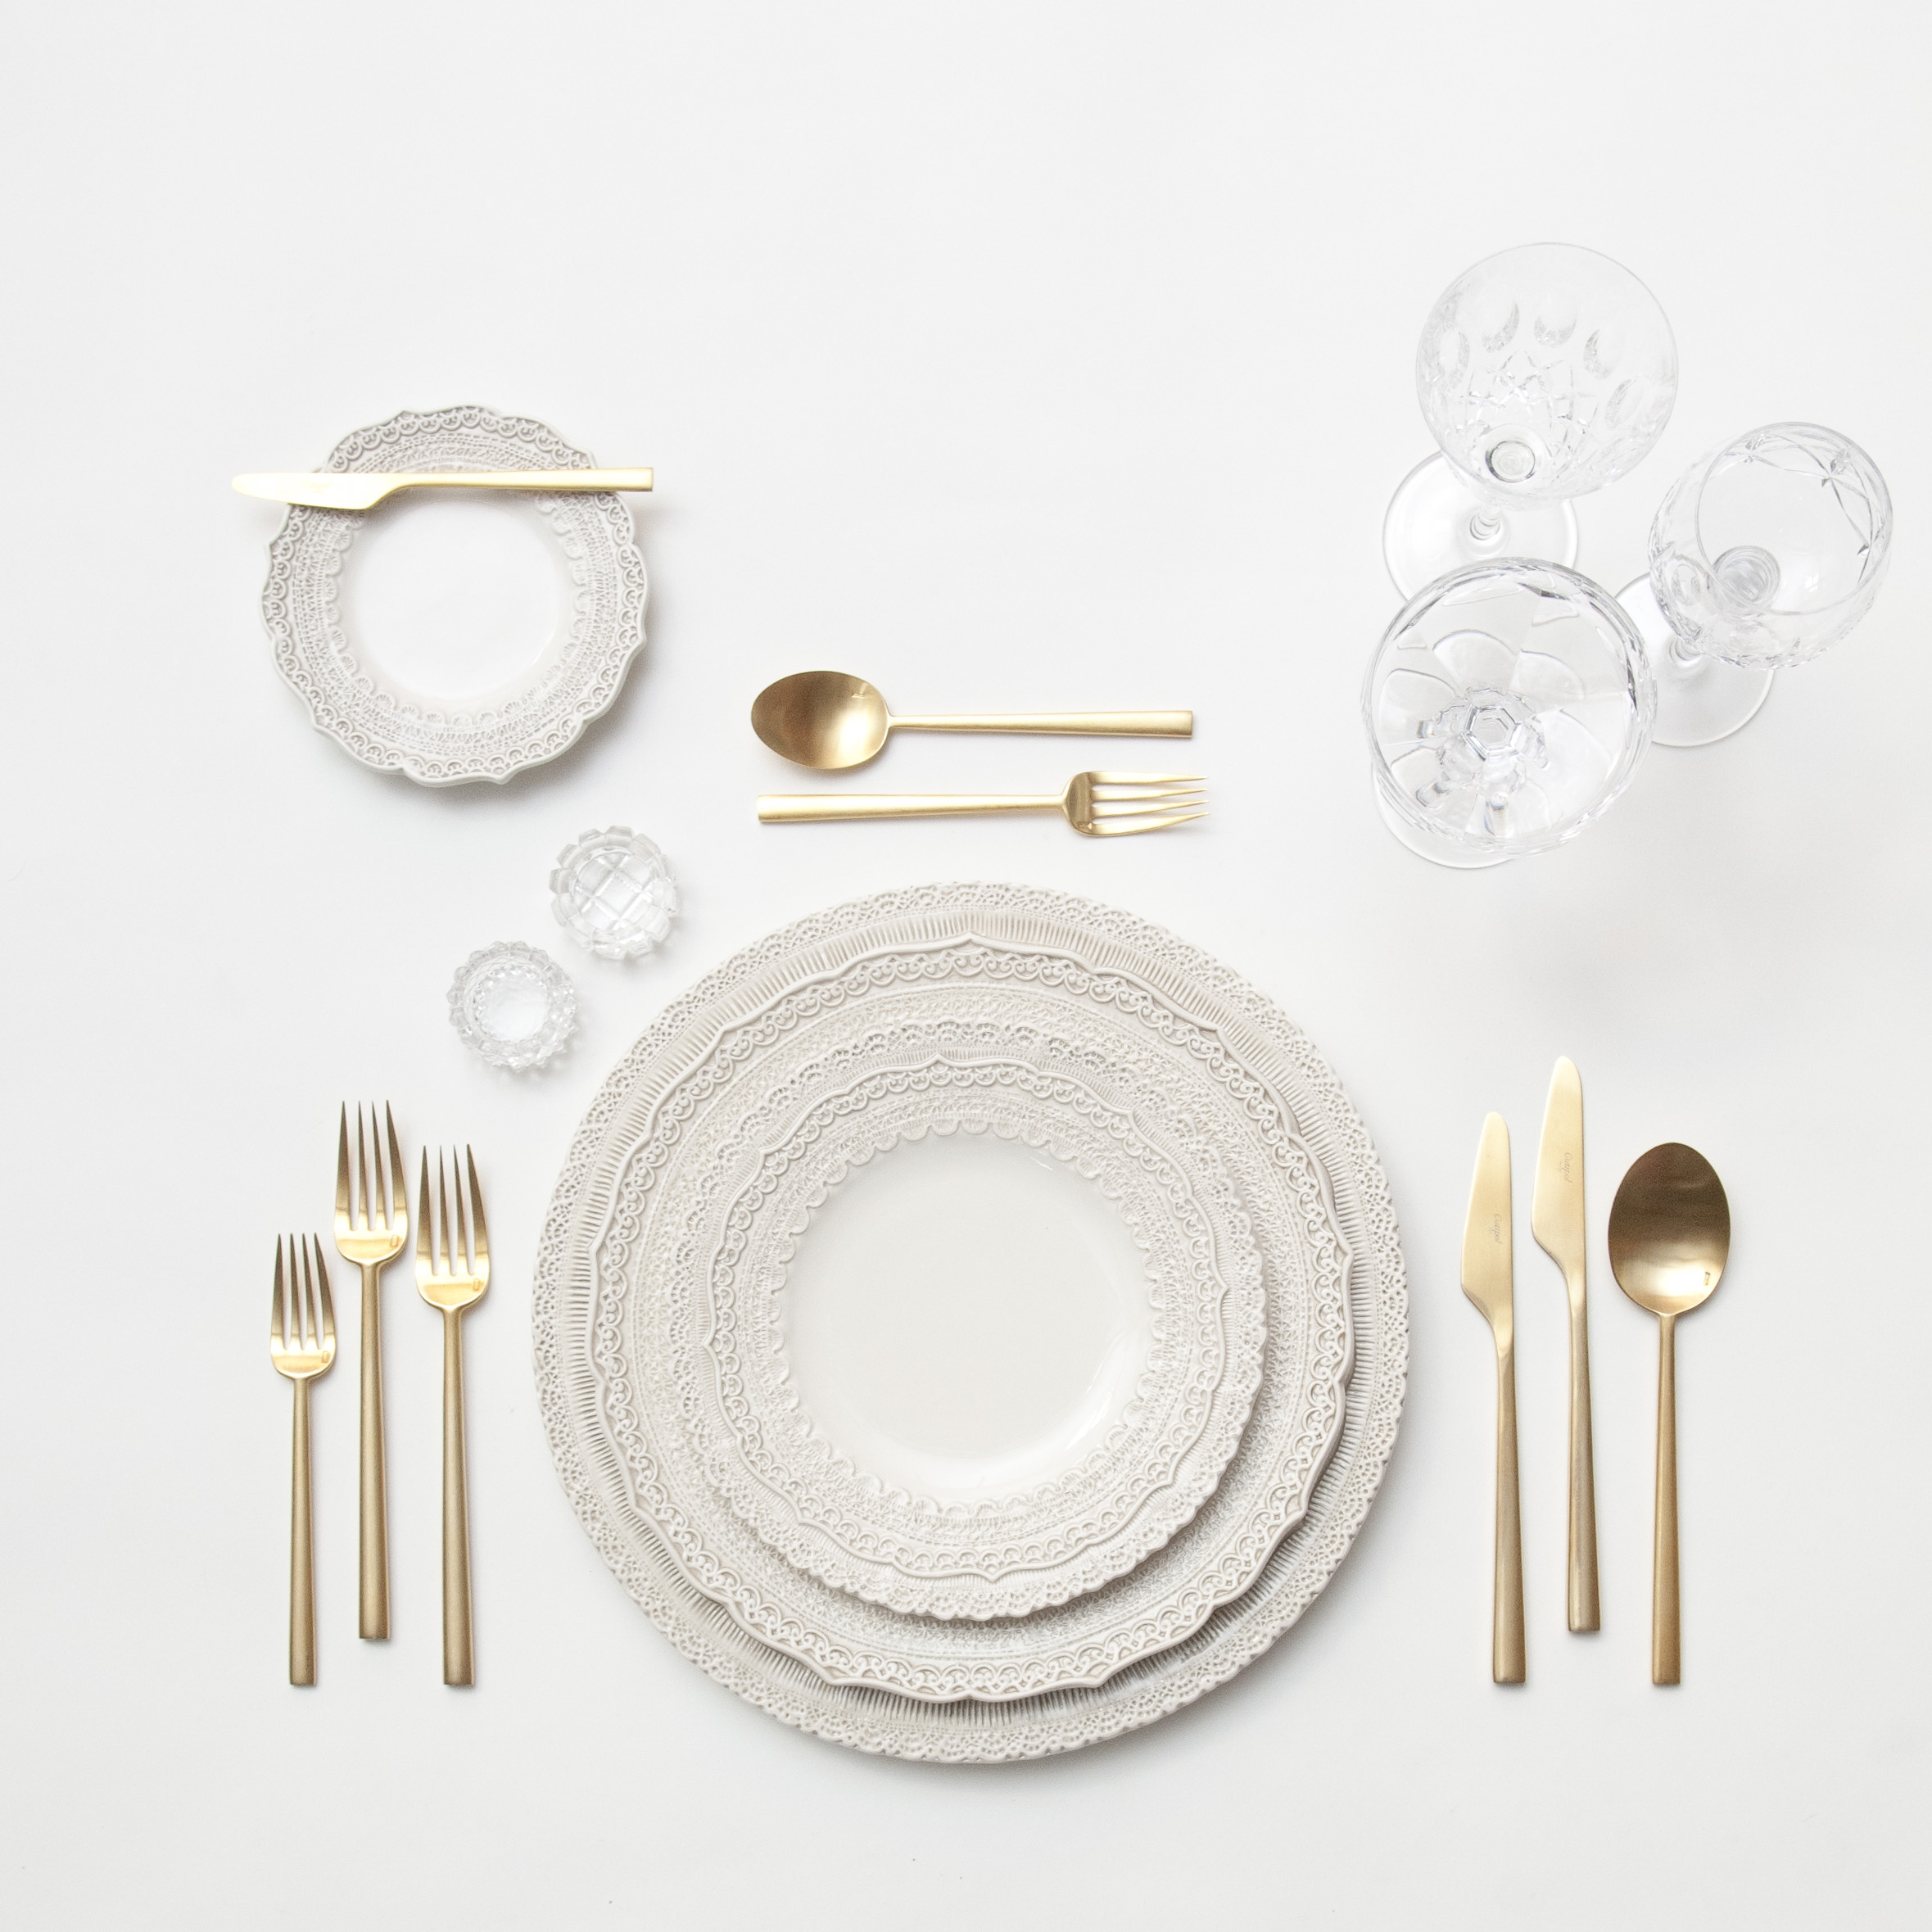 RENT: Lace Chargers/Dinnerware in White + Rondo Flatware in Brushed 24k Gold + Vintage Cut Crystal Goblets + Vintage Champagne Coupes + Antique Crystal Salt Cellars  SHOP: Rondo Flatware in Brushed 24k Gold